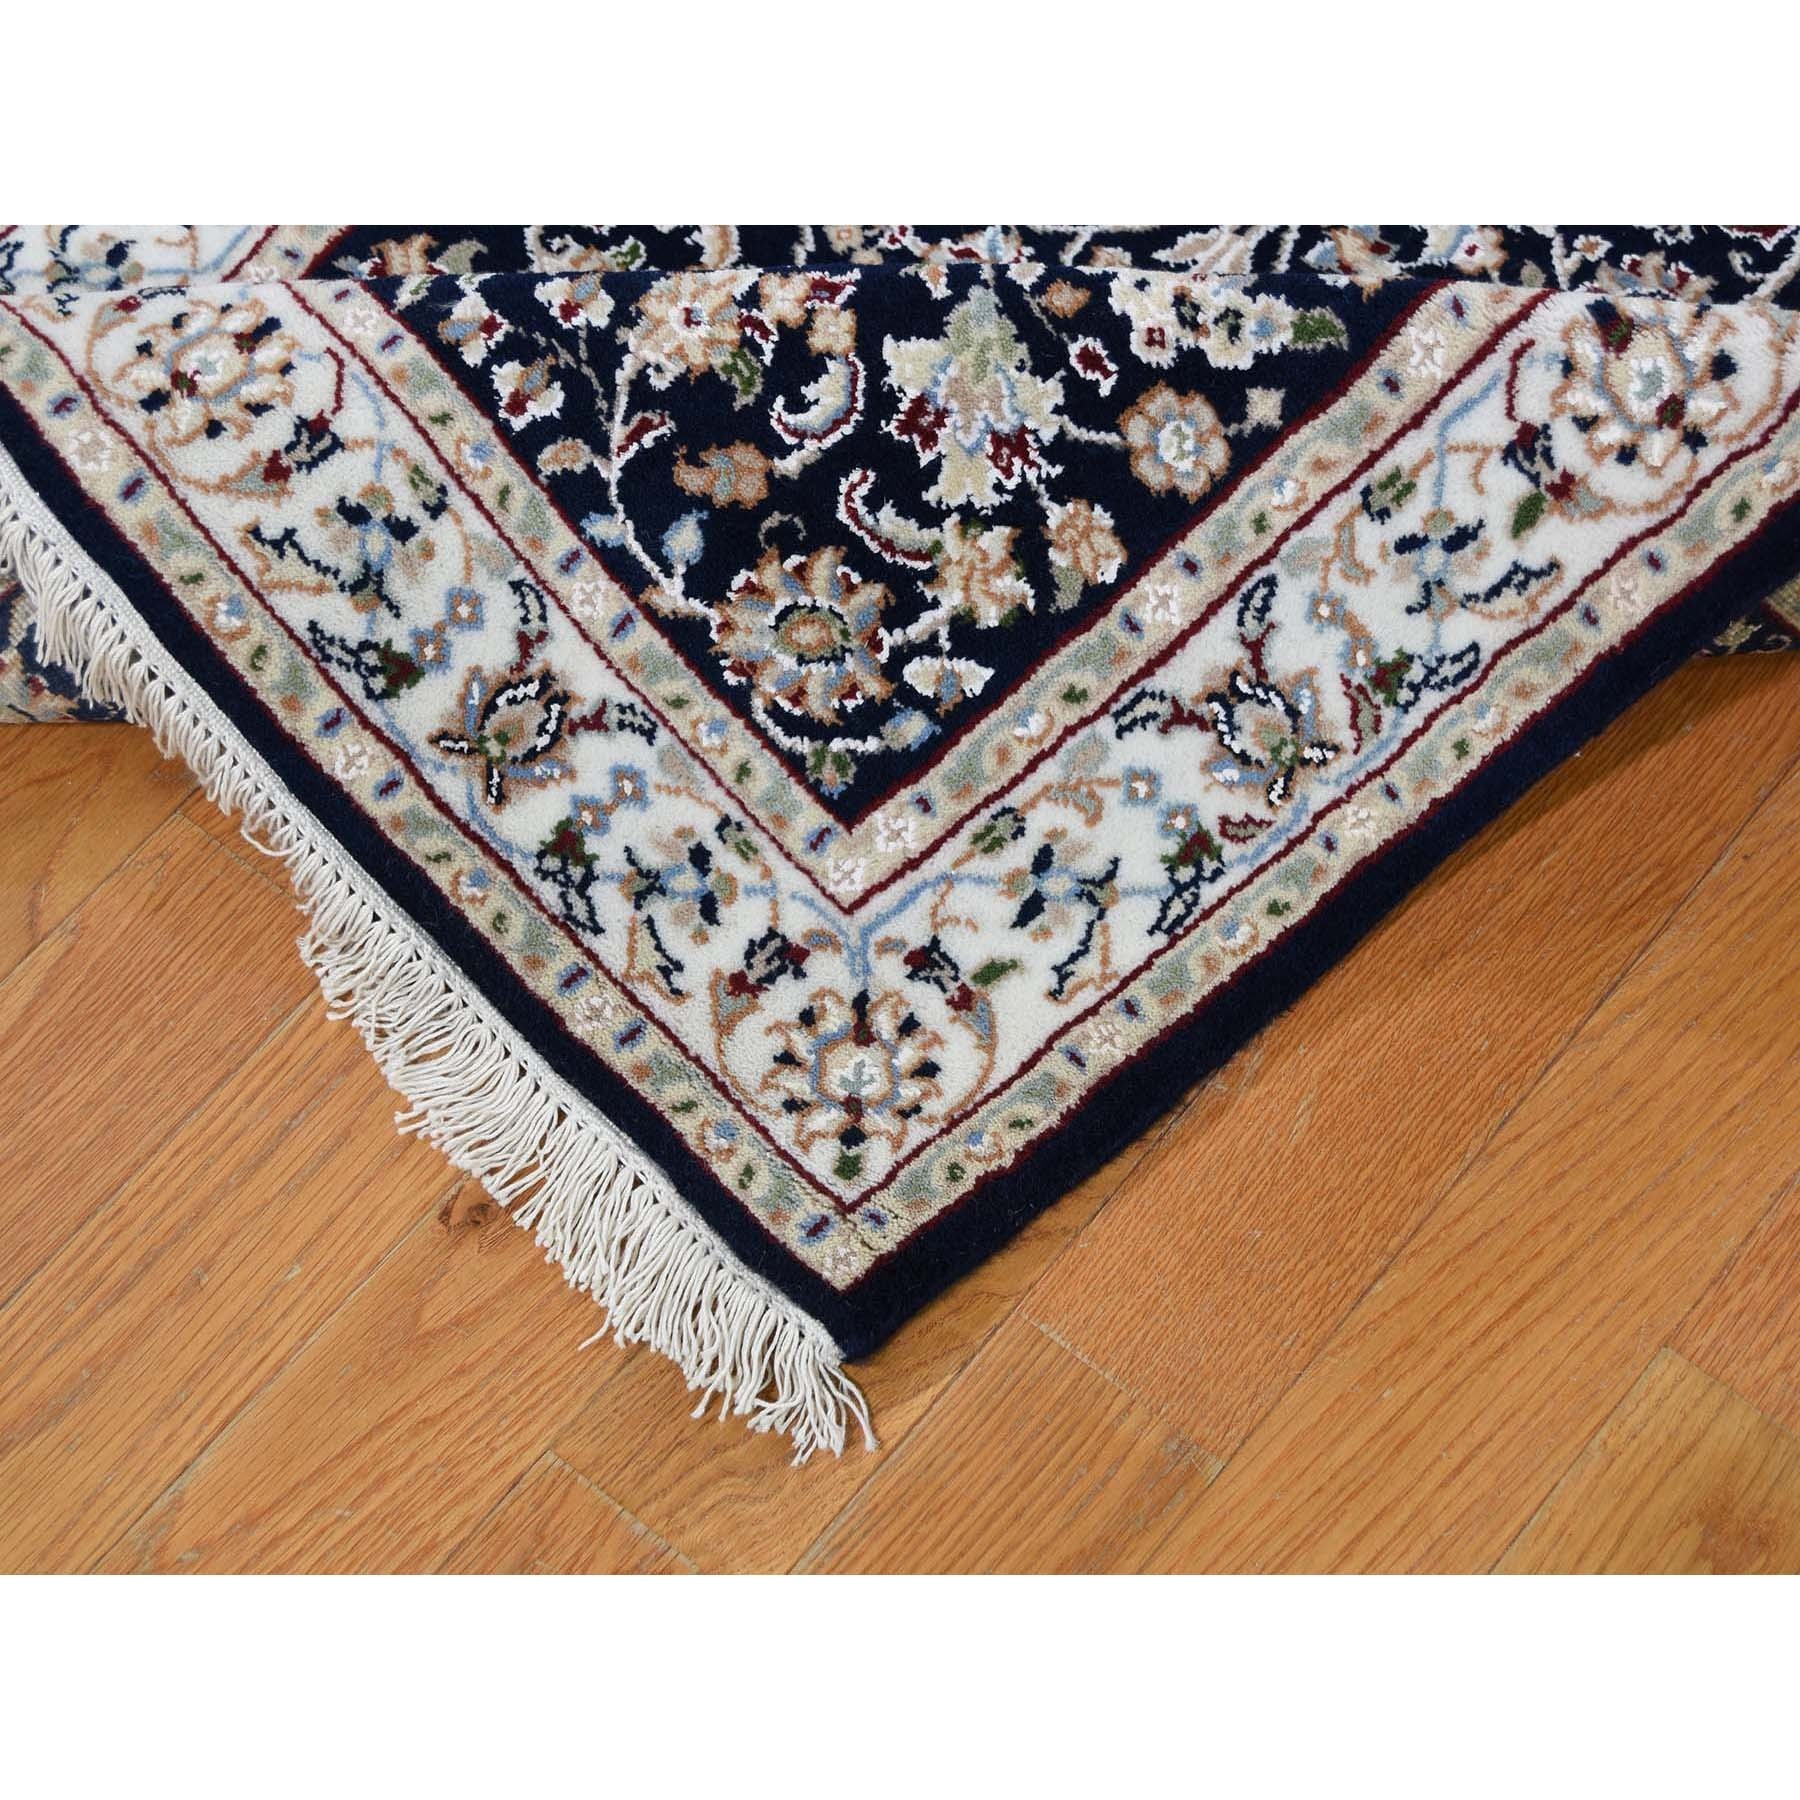 """2'10""""x19'7"""" Navy Blue Wool And Silk 250 Kpsi All Over Design Nain XL Runner Hand-Knotted Oriental Rug"""